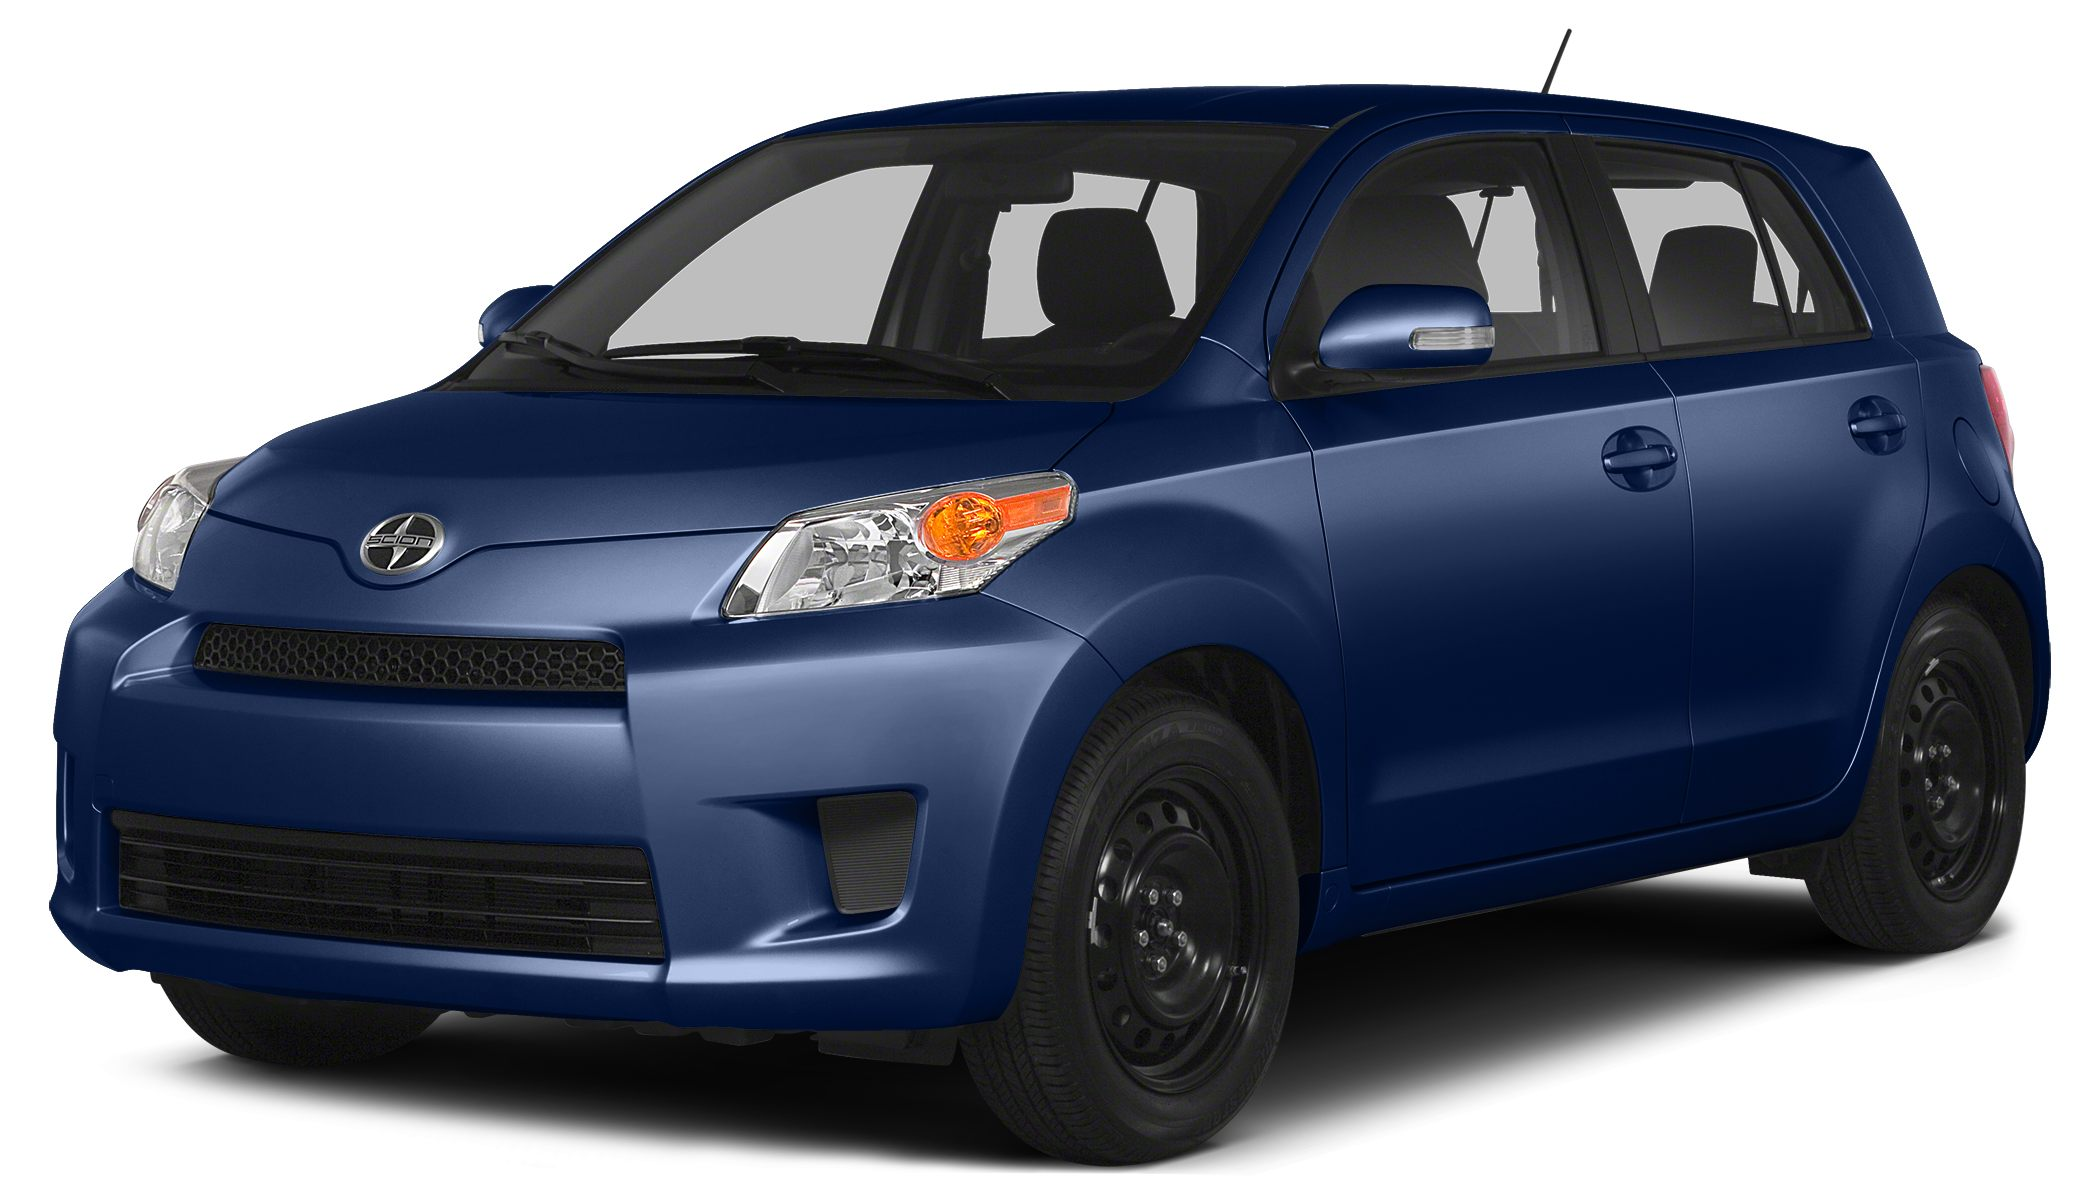 2014 Scion xD Base FUEL EFFICIENT 33 MPG Hwy27 MPG City CARFAX 1-Owner LOW MILES - 30205 xD t